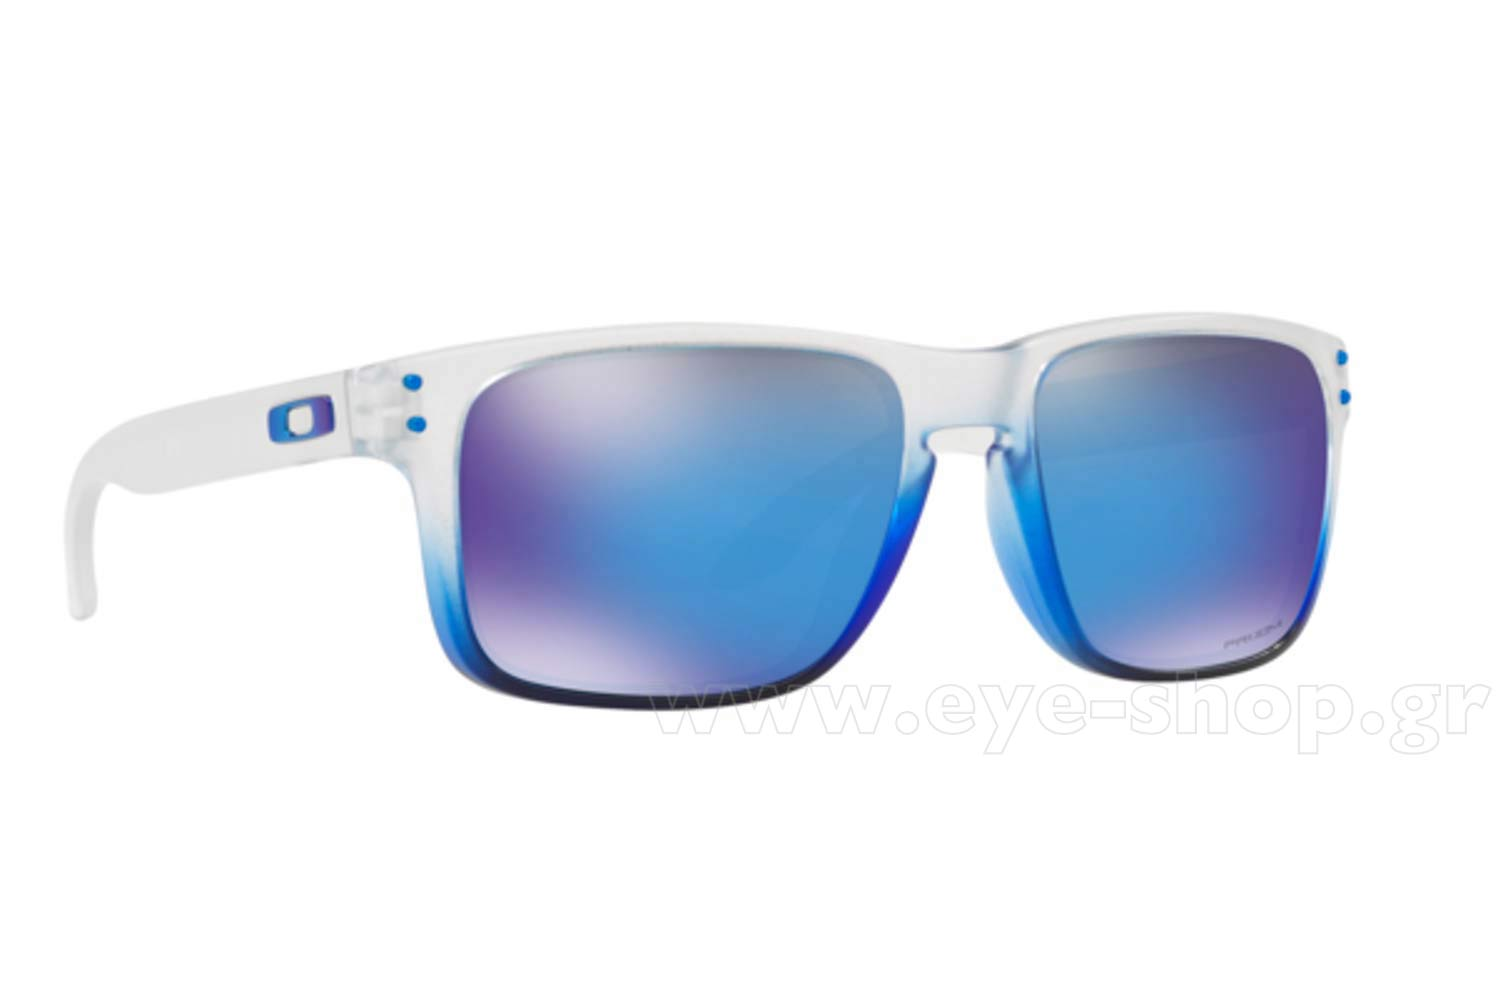 49478e5809 Oakley Holbrook 9102 G5 THE MIST COLLECTION